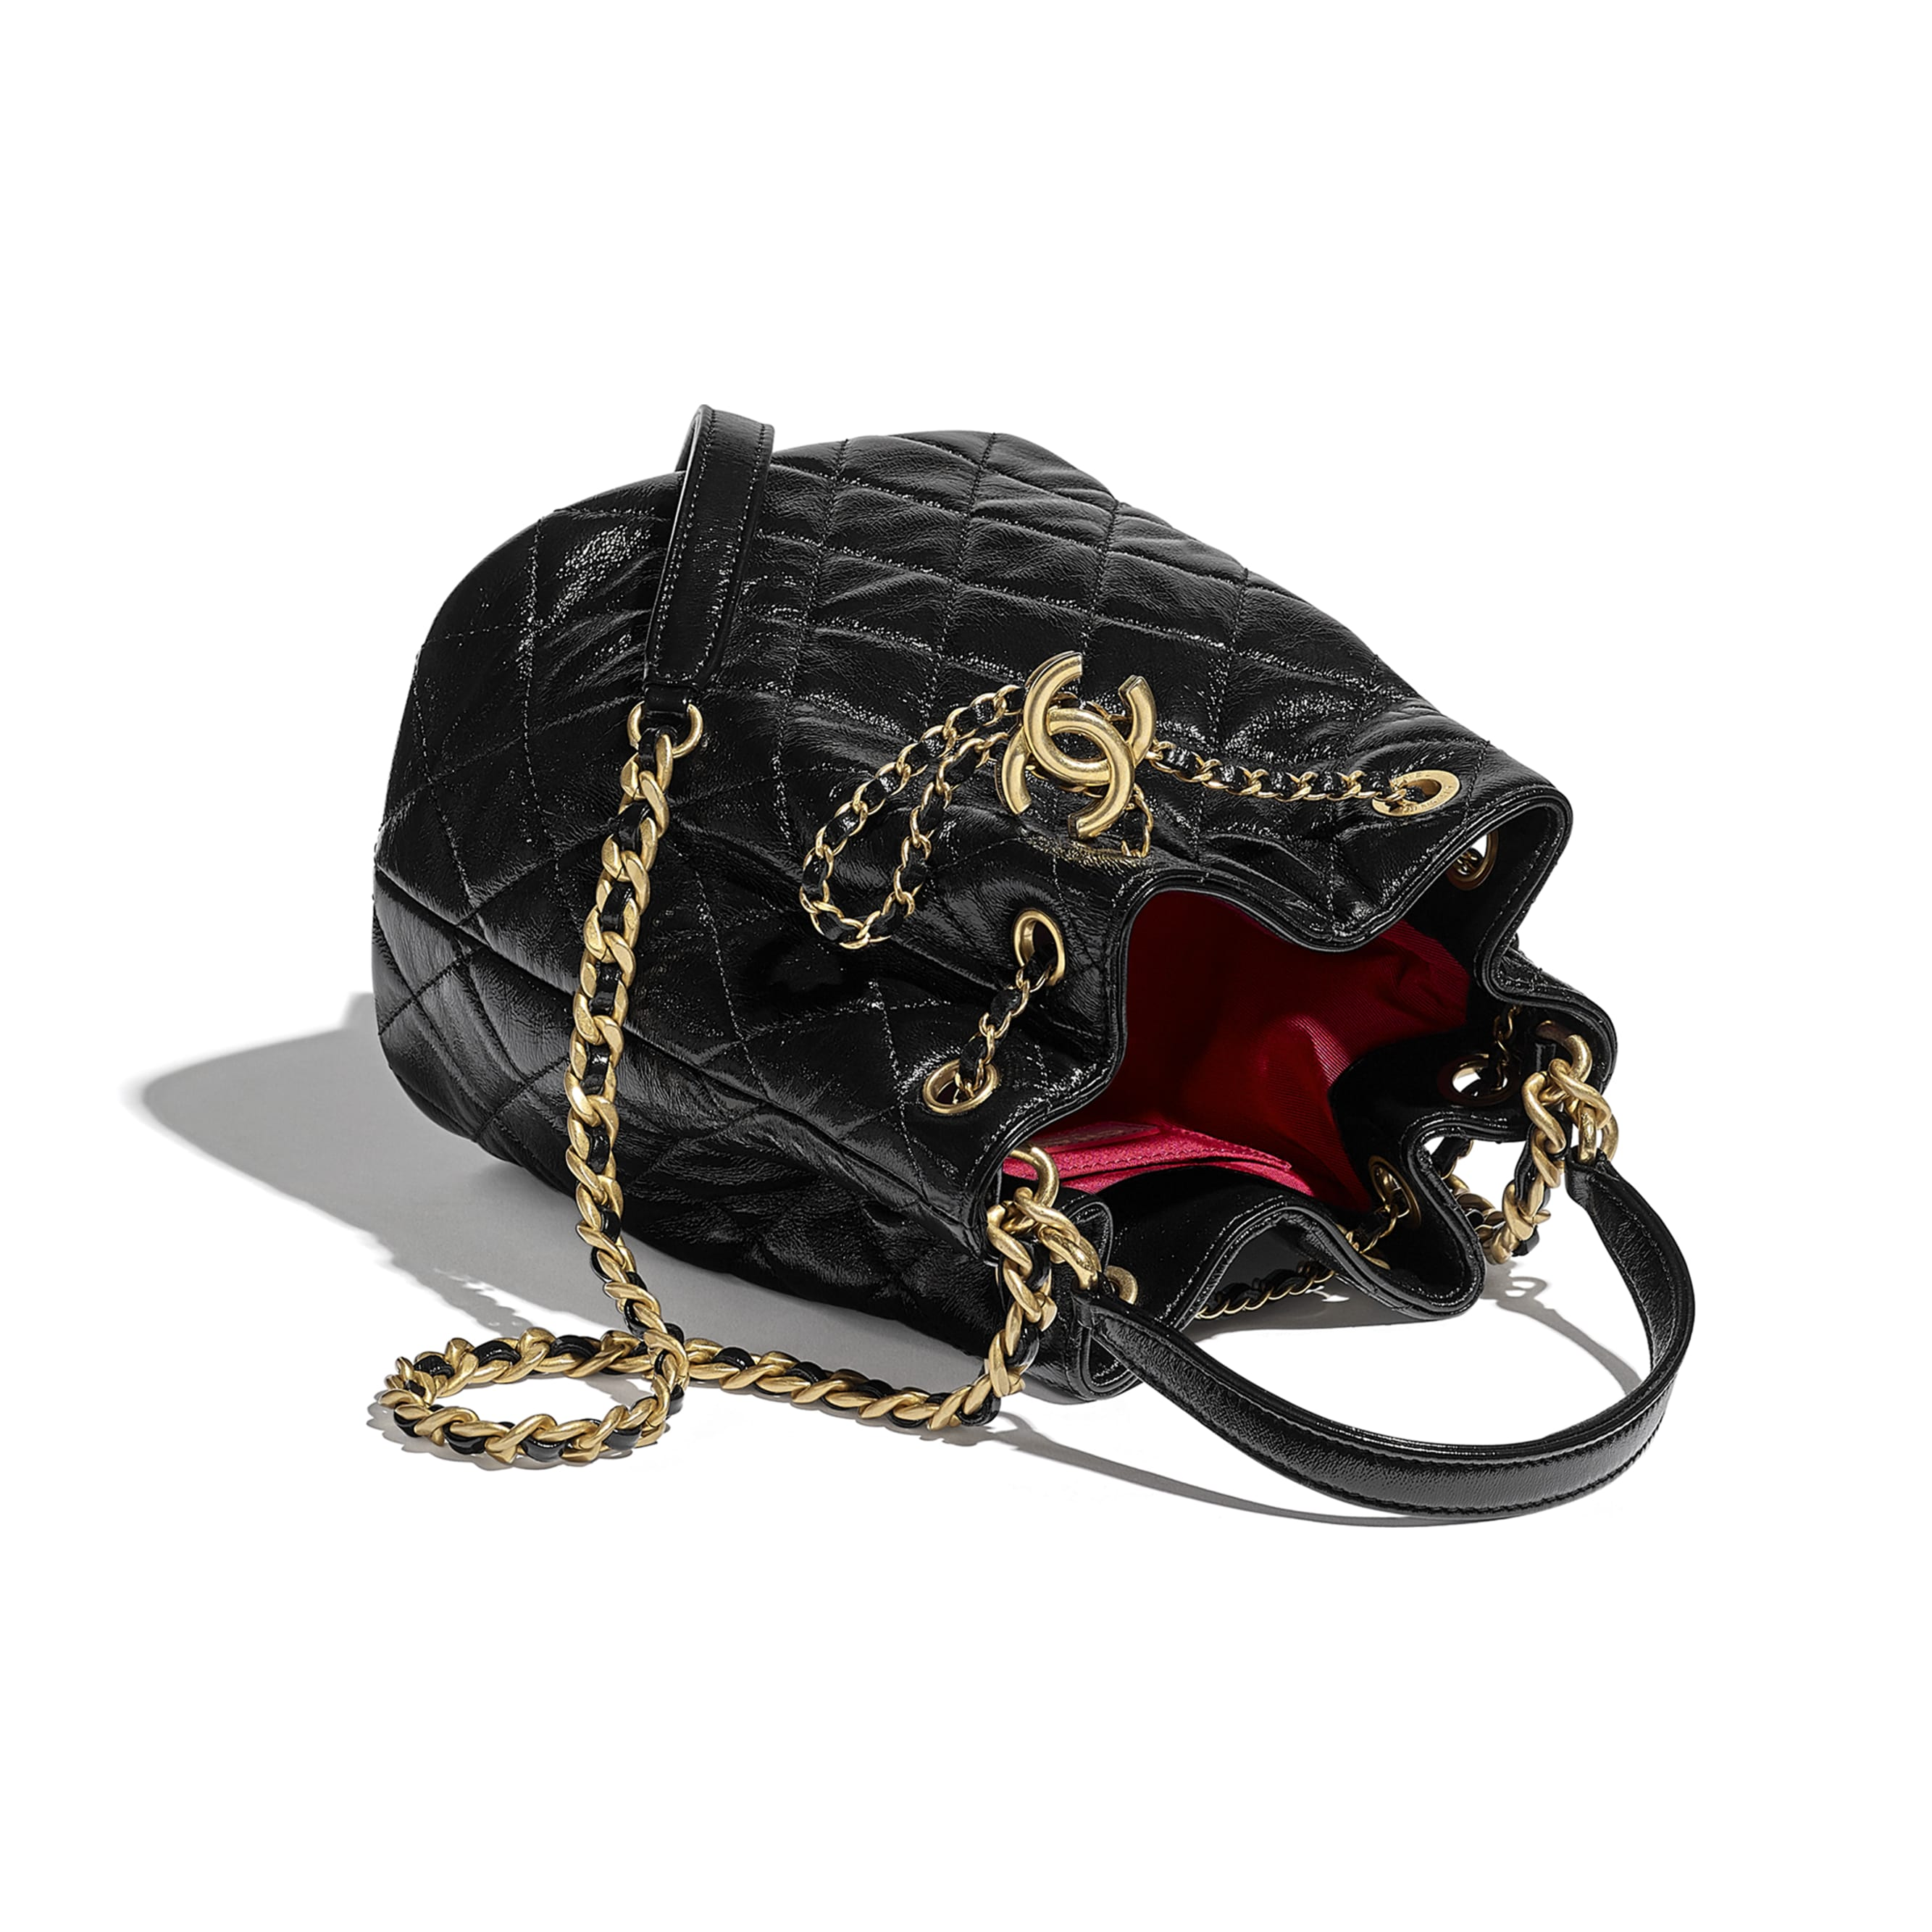 Drawstring Bag - Black - Shiny Lambskin & Gold-Tone Metal - CHANEL - Other view - see standard sized version